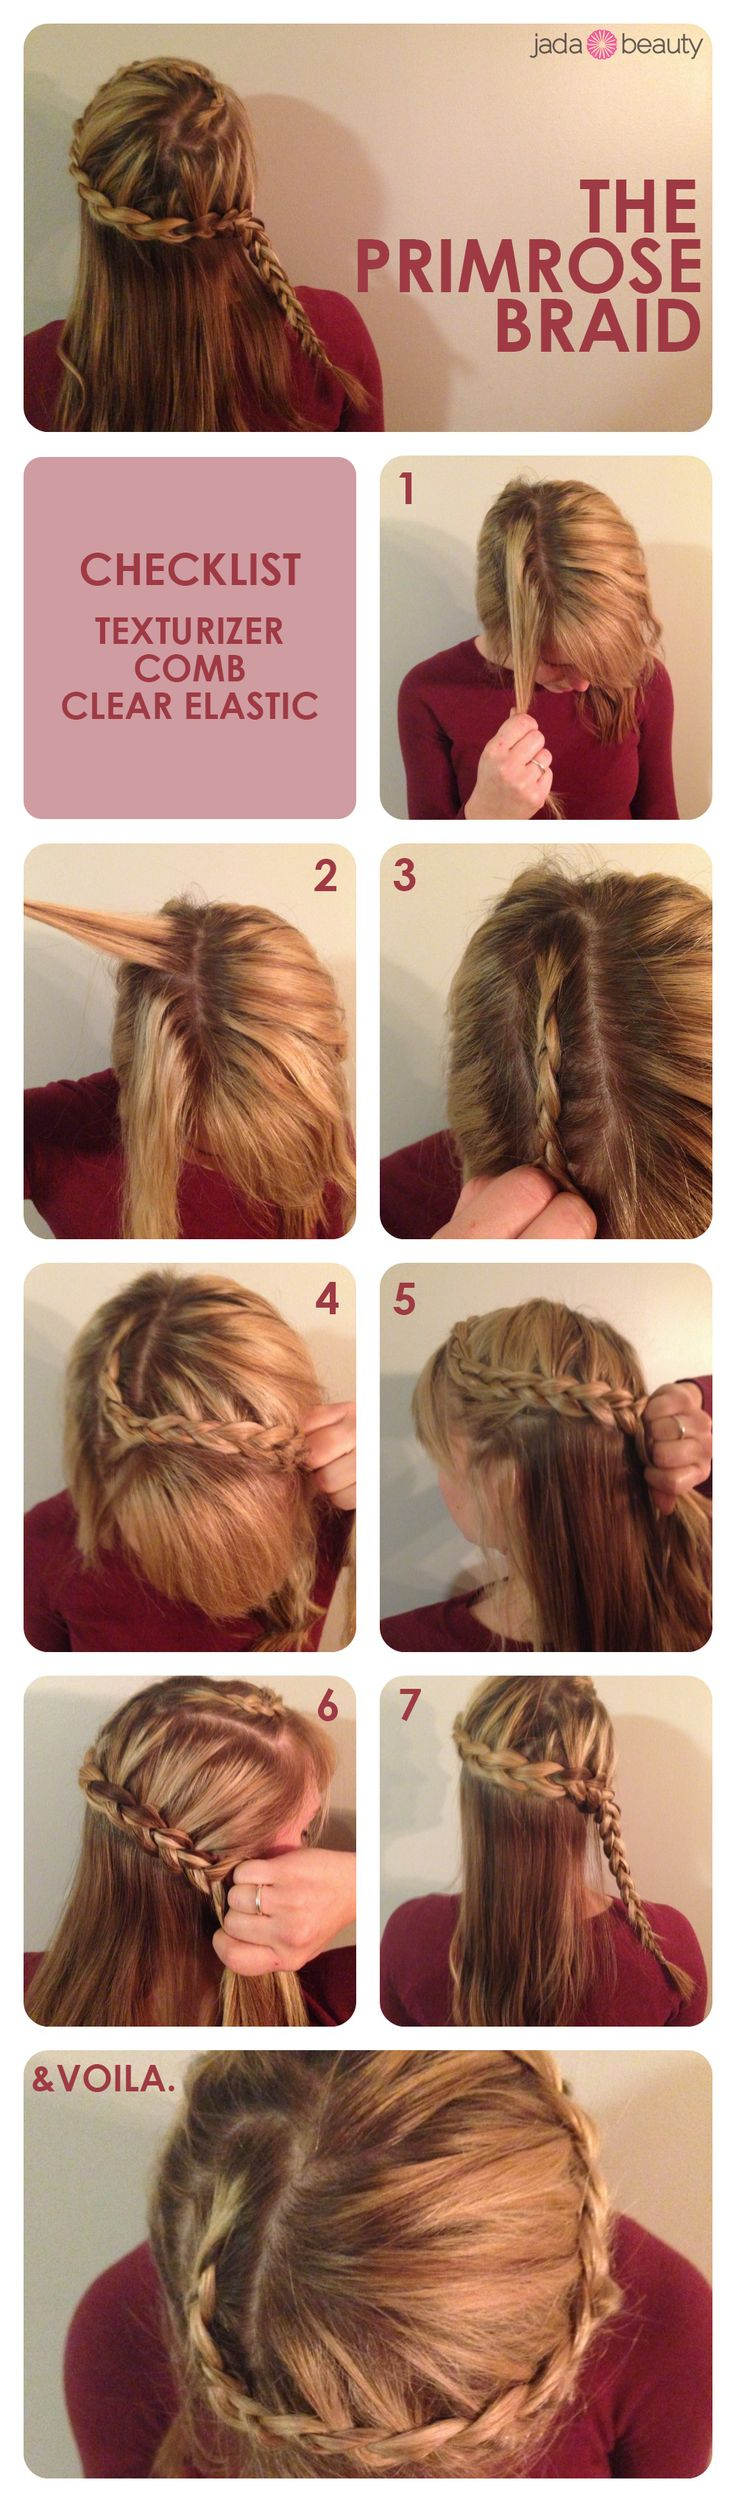 get the primrose braid from hunger games catching fire! easy #hair tutorial - pin now, try later.